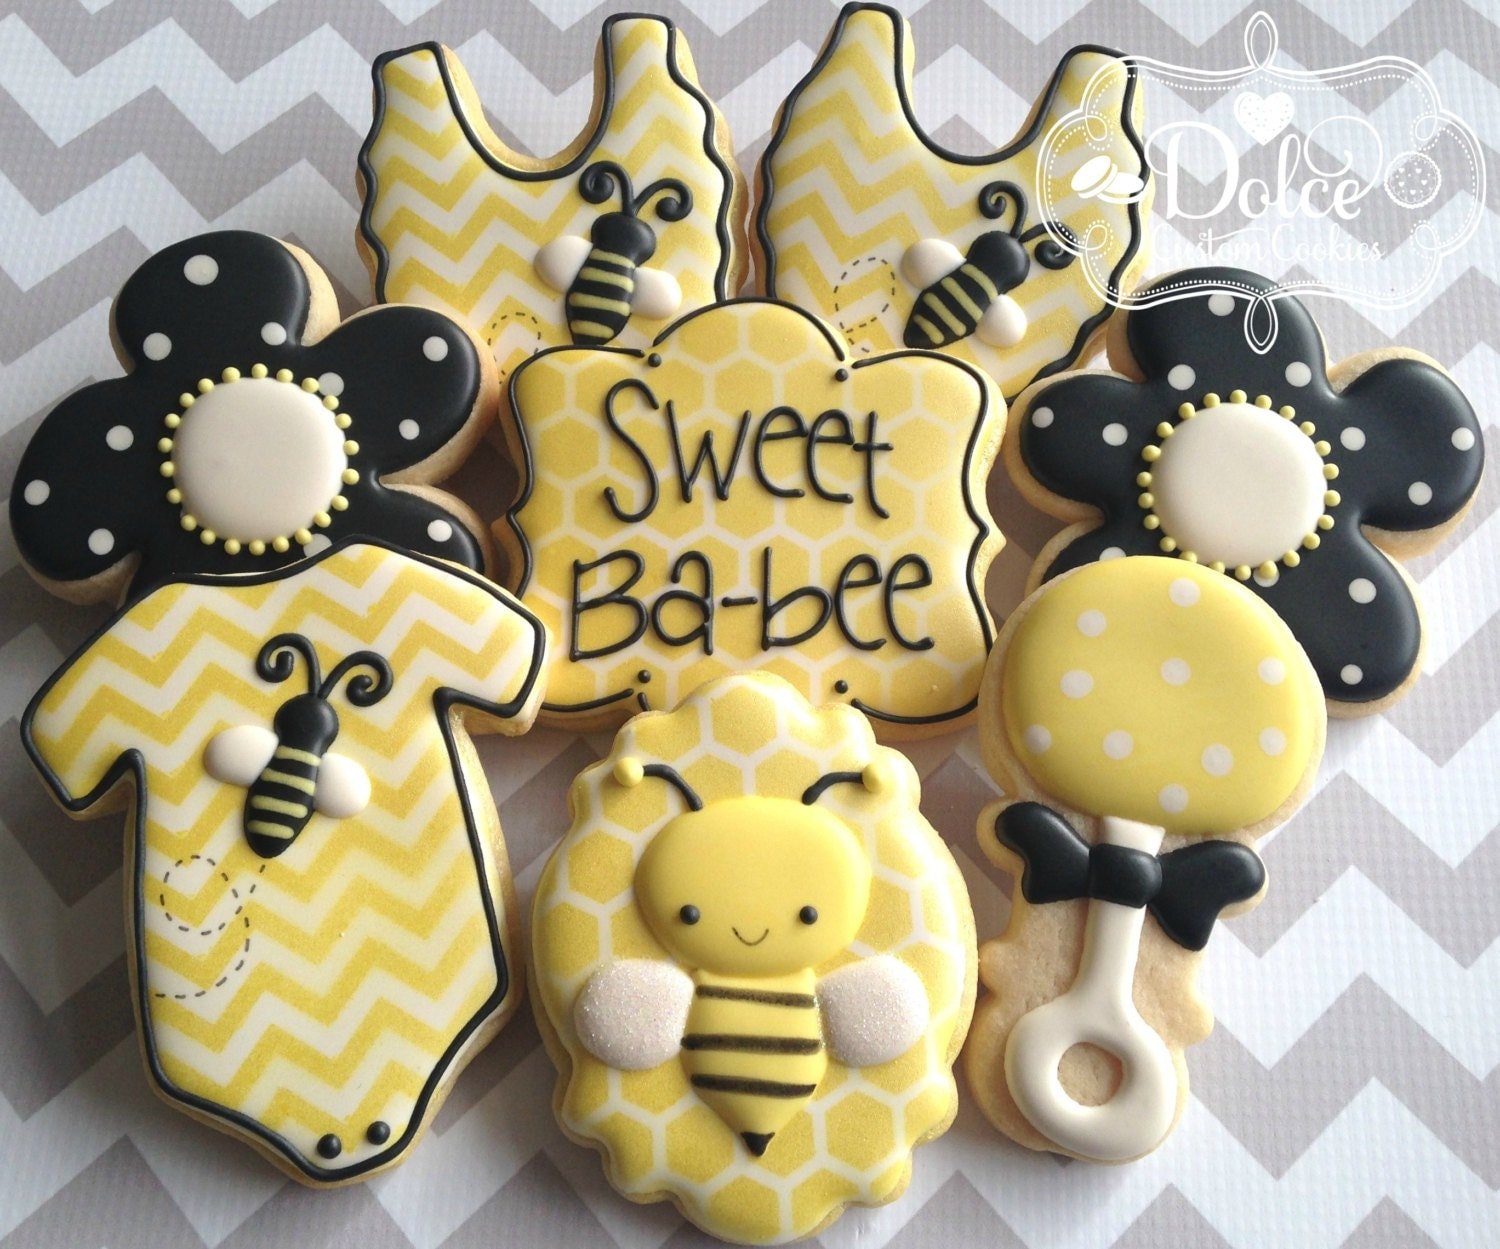 layer cookies bumble bee cookies super cute bumble bee cookies for a ...